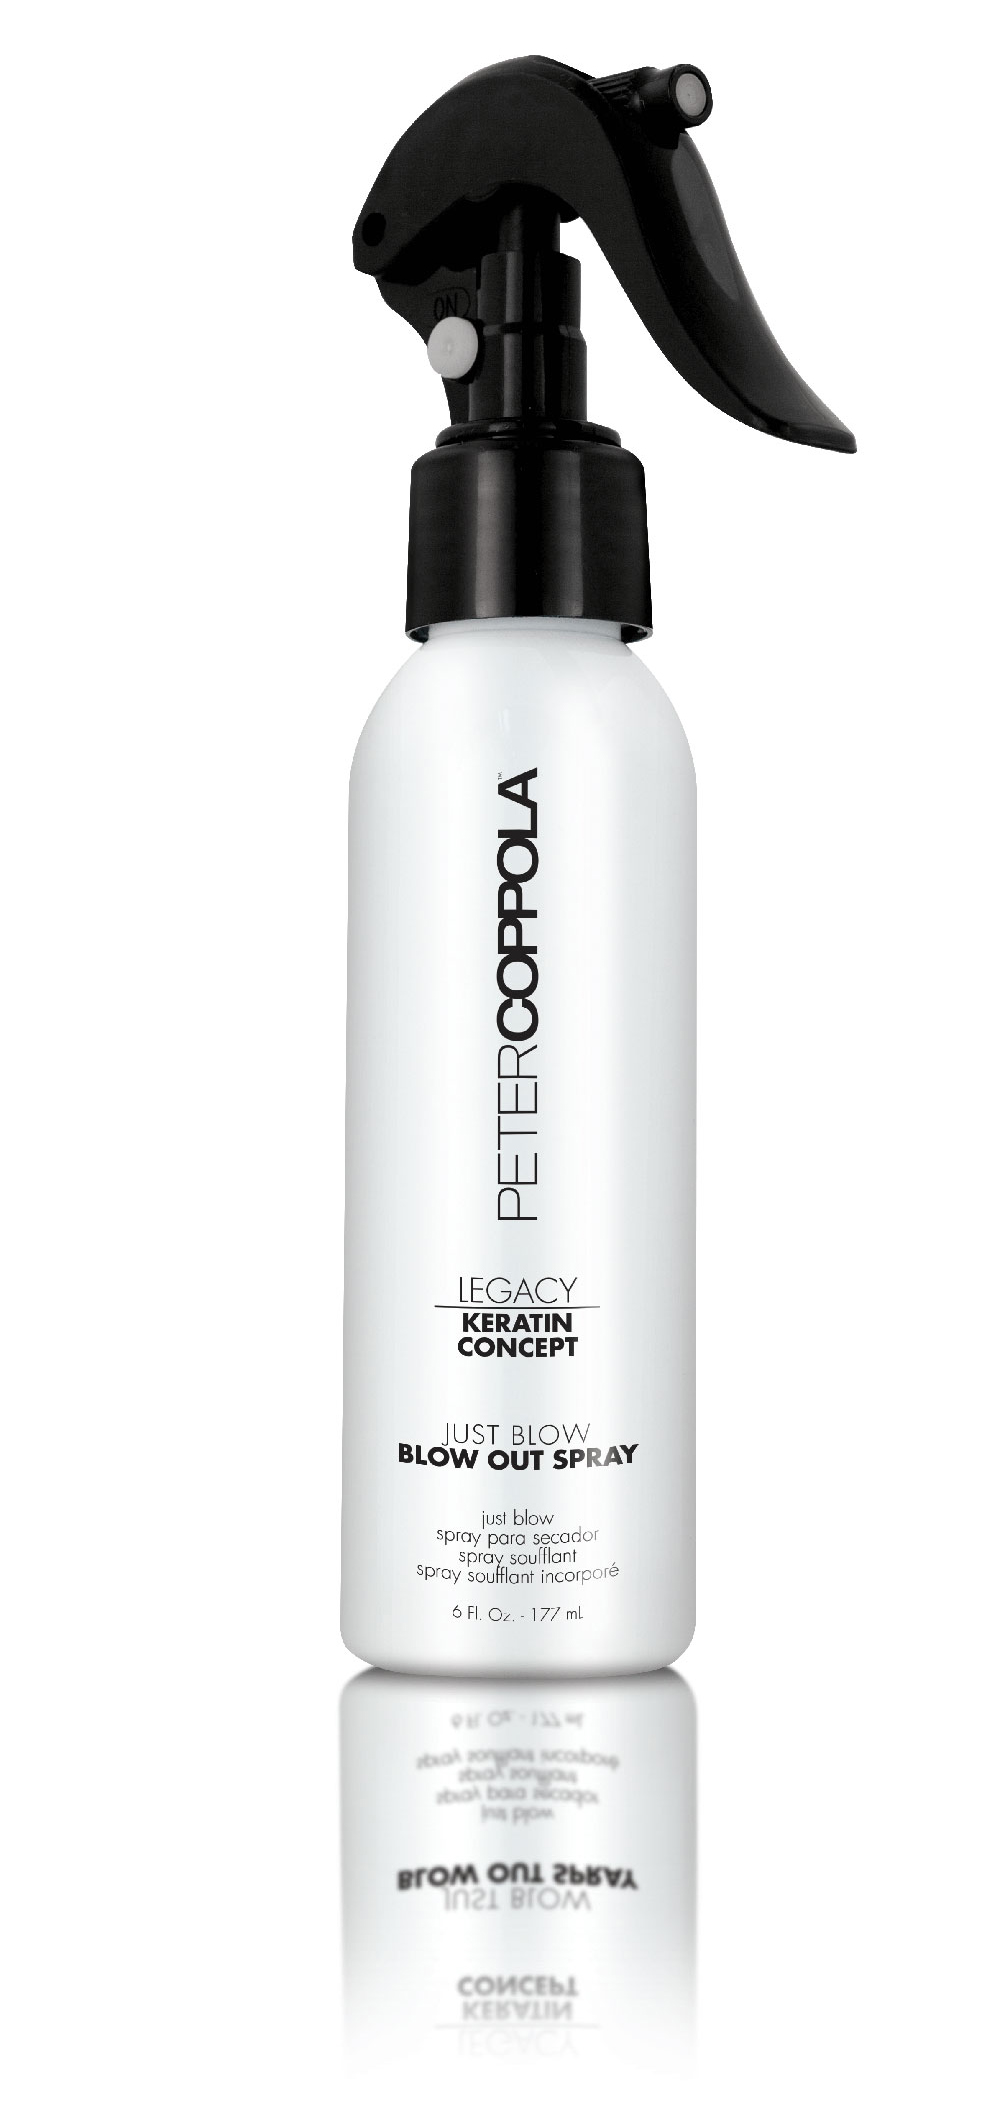 Peter Coppola Keratin Concept's Just Blow-Blow Out Spray